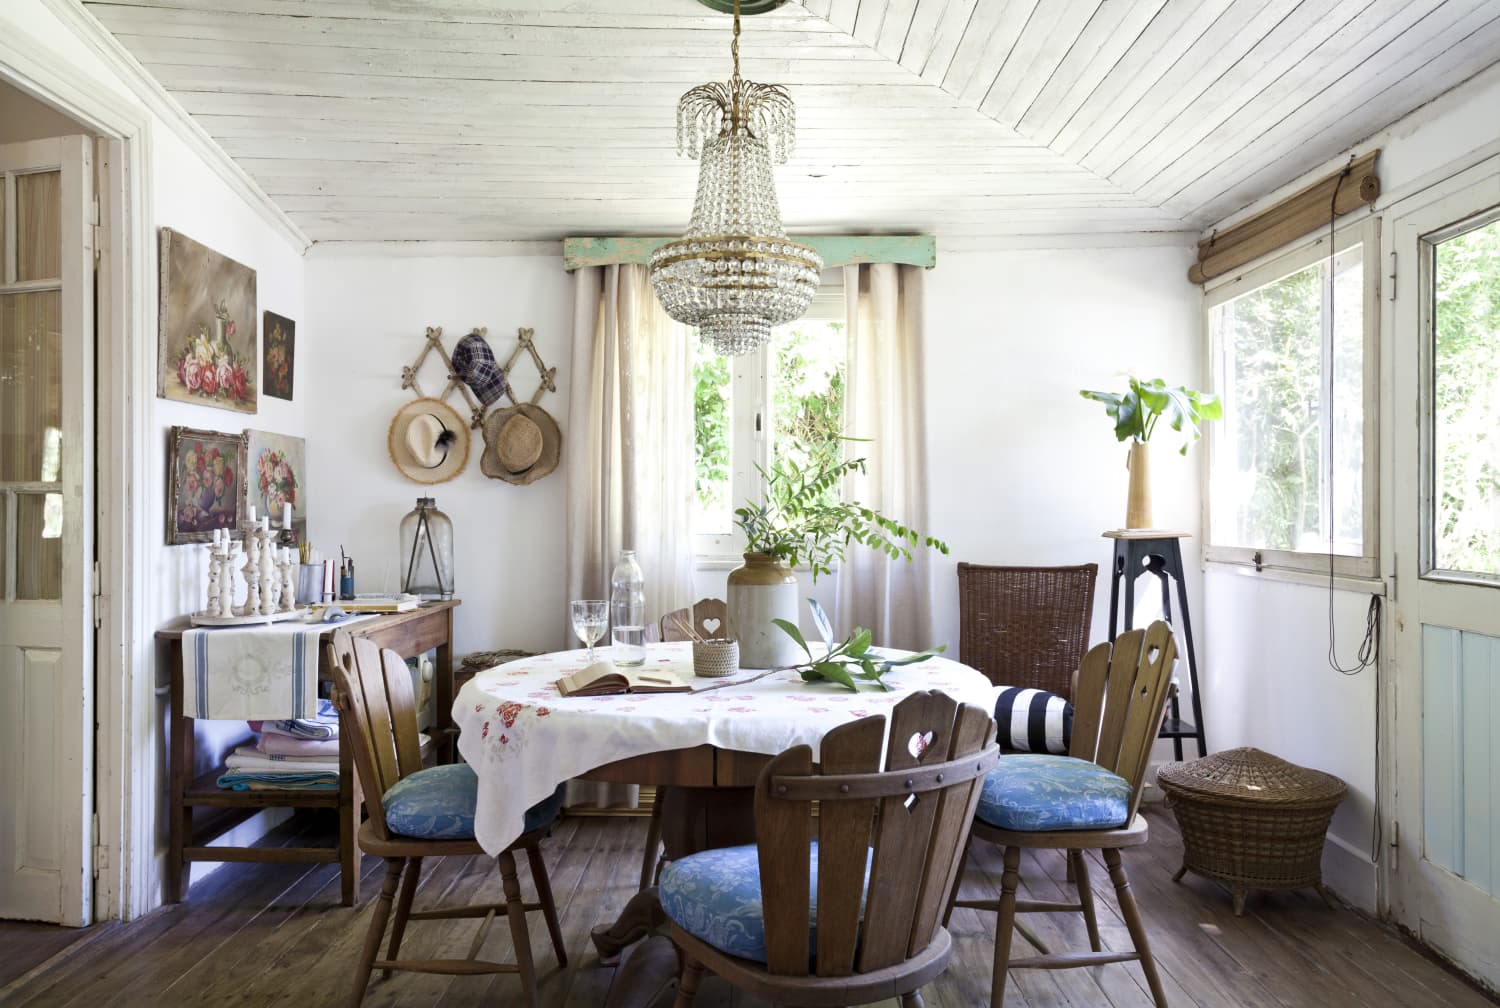 A Rustic Chic Argentina Home Has an Incredible Collection of Furniture and Art